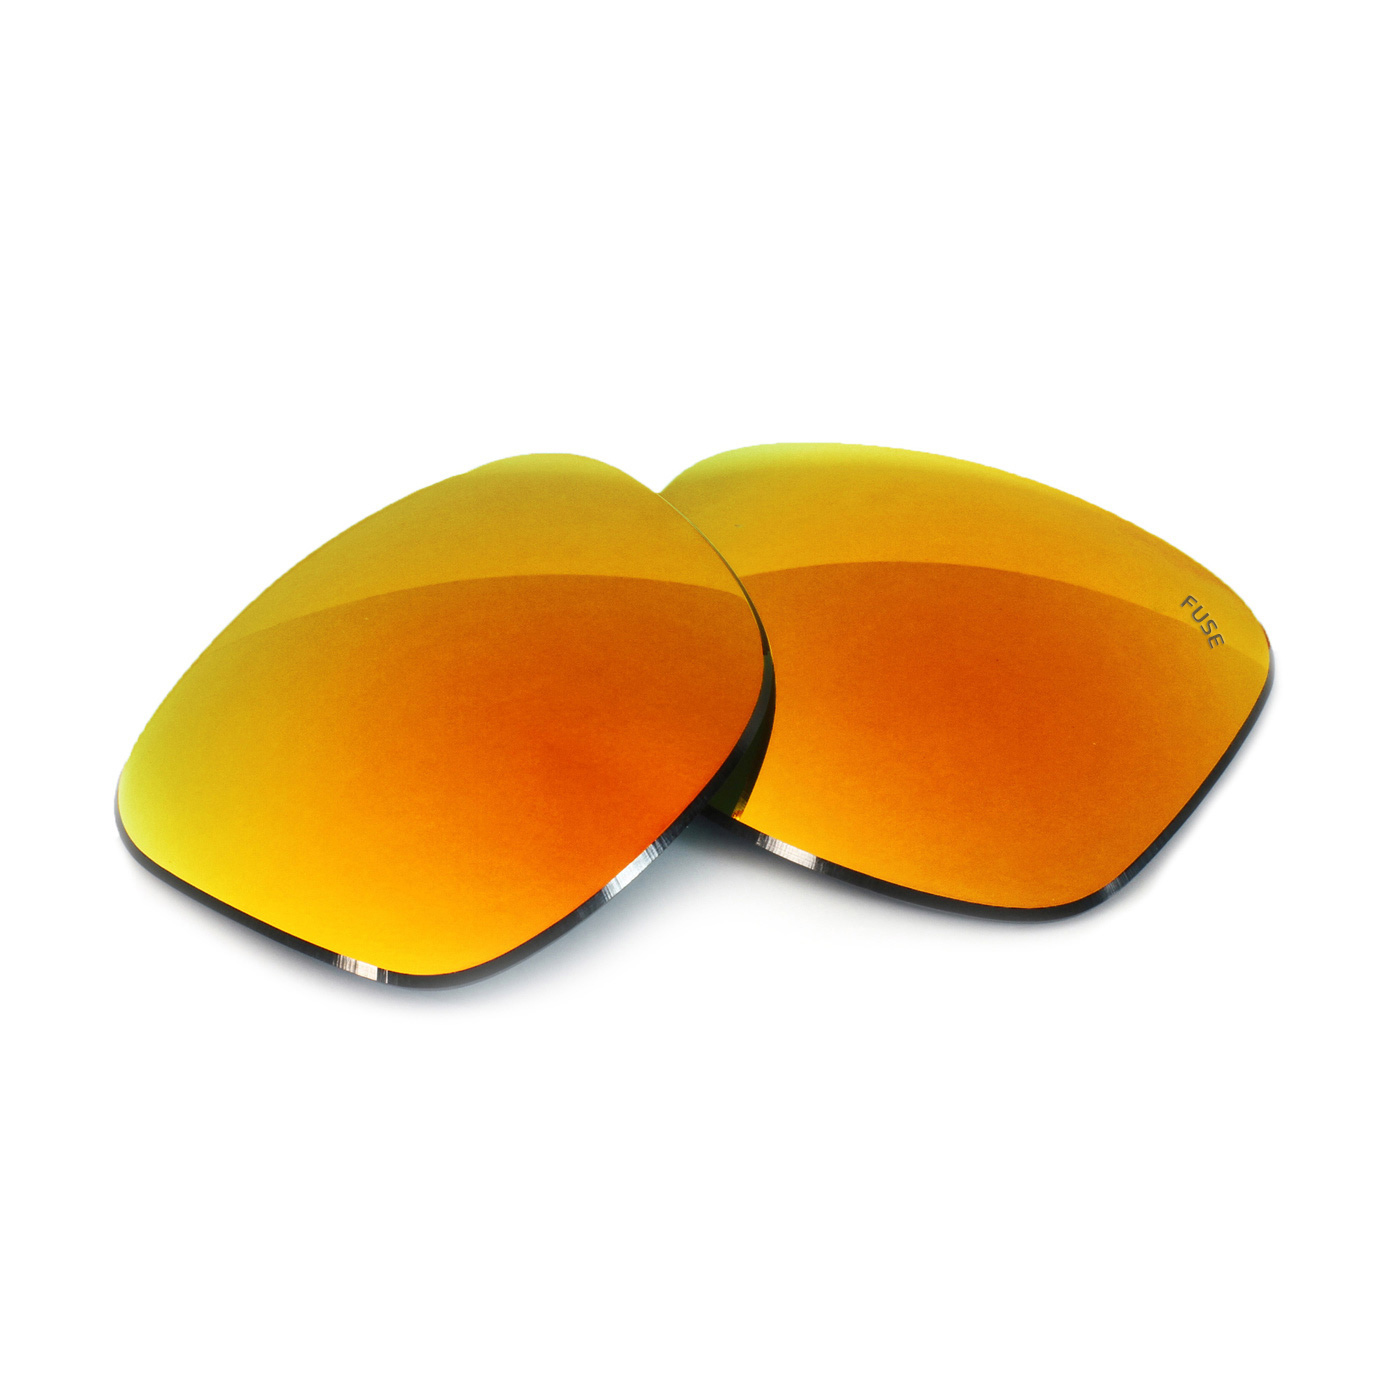 b2e2fcd710 Fuse Lenses Replacement Lenses for Persol 3019-S (55mm)